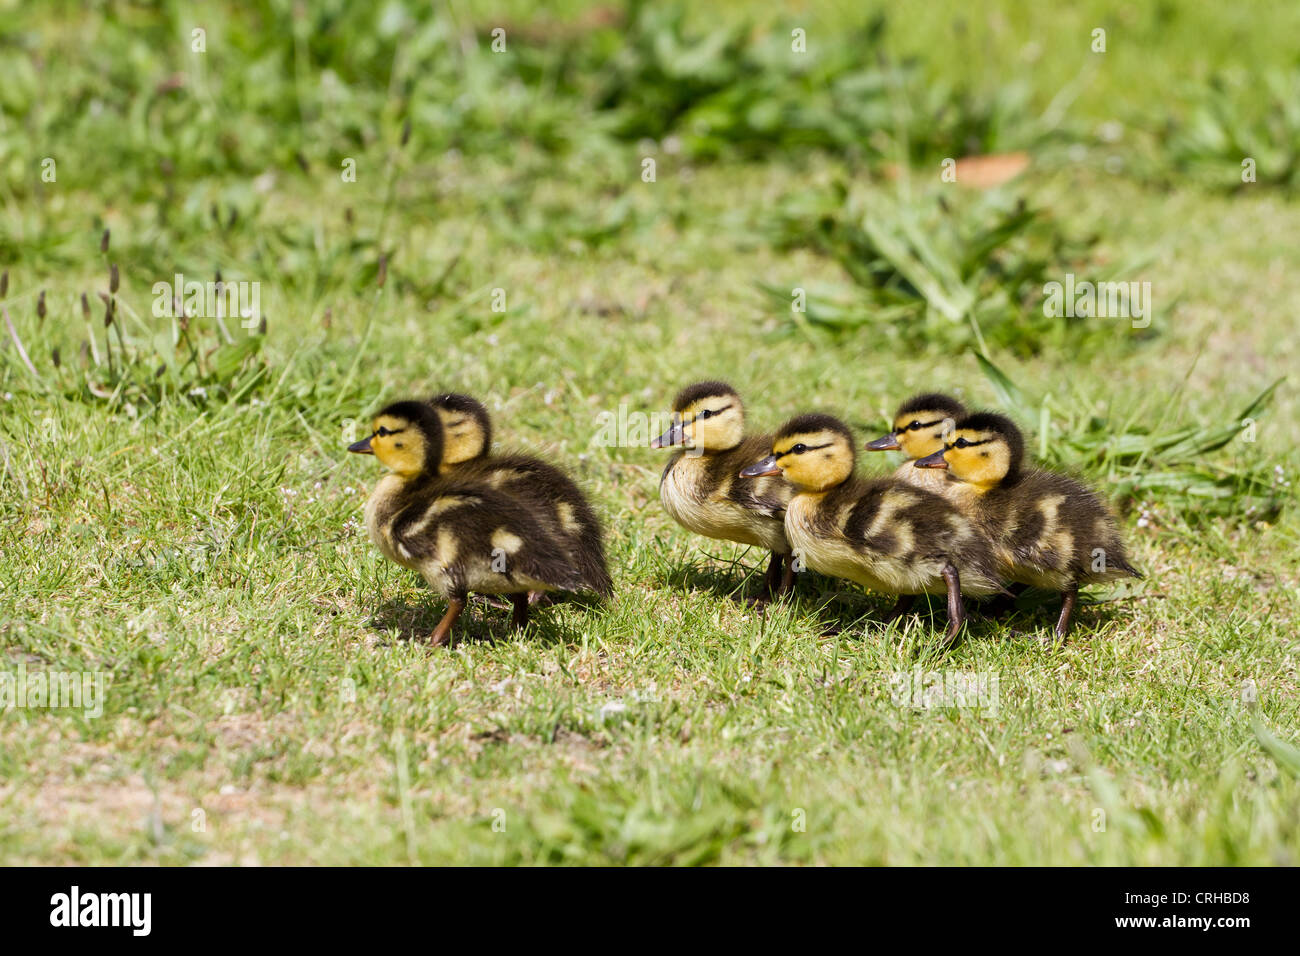 Baby ducklings close up shot - Stock Image